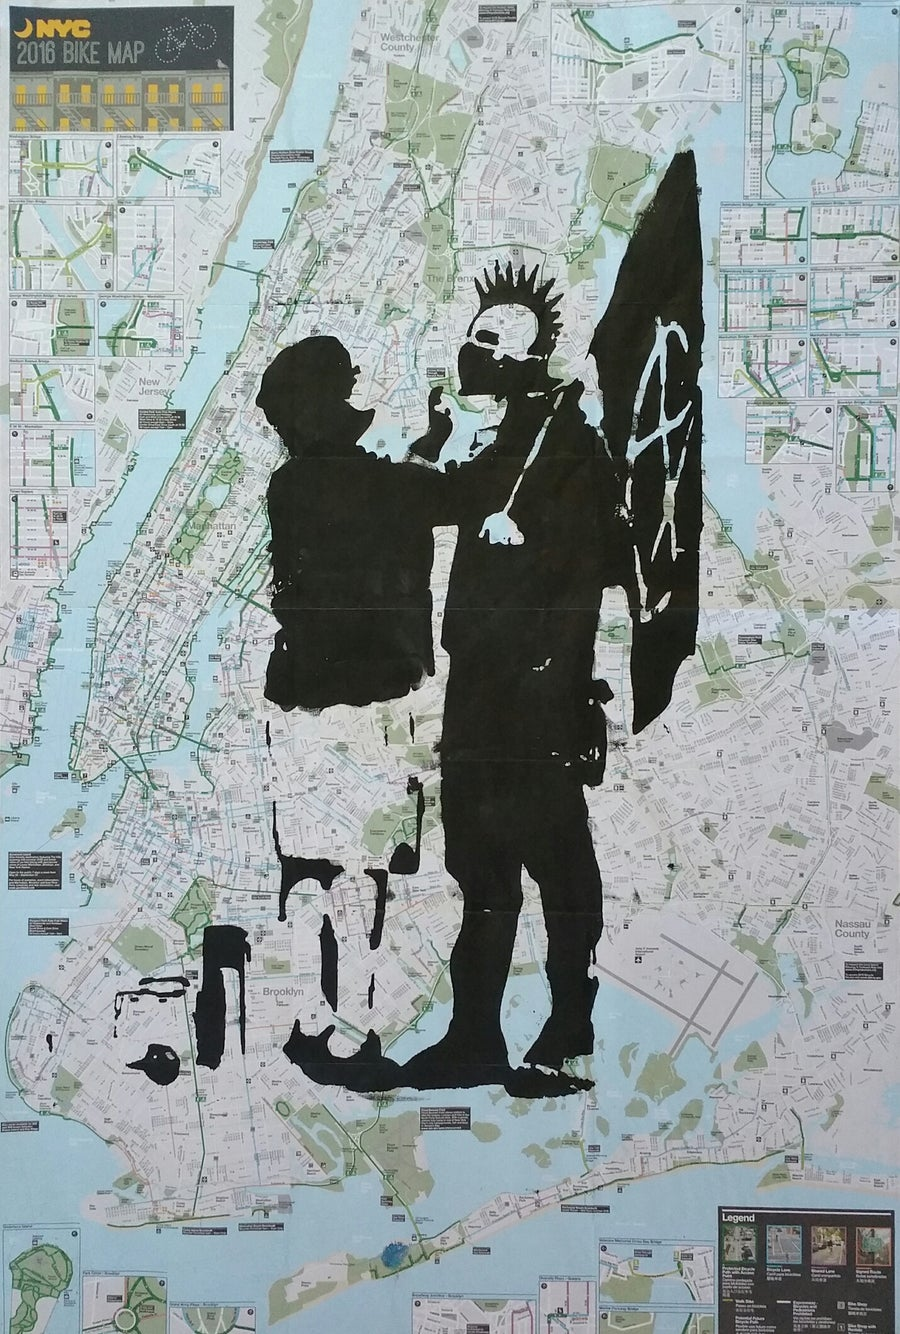 Image of BANKSY REPRODUCTION. ORIGINAL SILKSCREEN ON A NEW YORK CITY BIKE AND SUBWAY MAP.